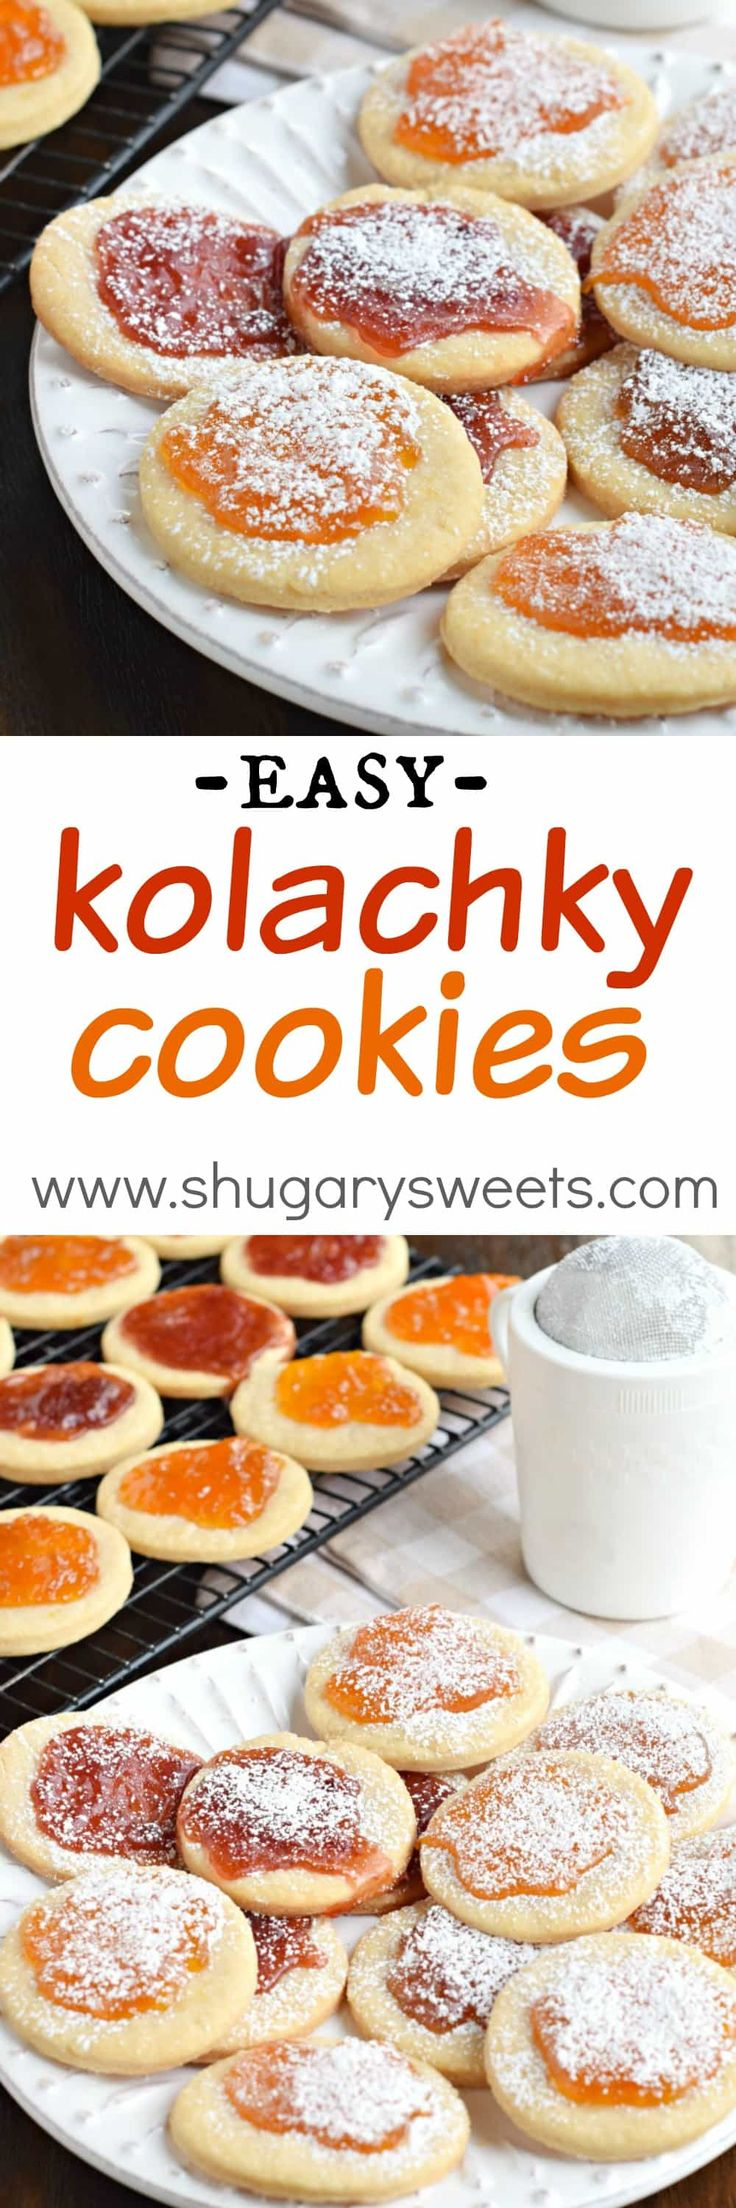 These Kolachky Cookies have a melt in your mouth c…